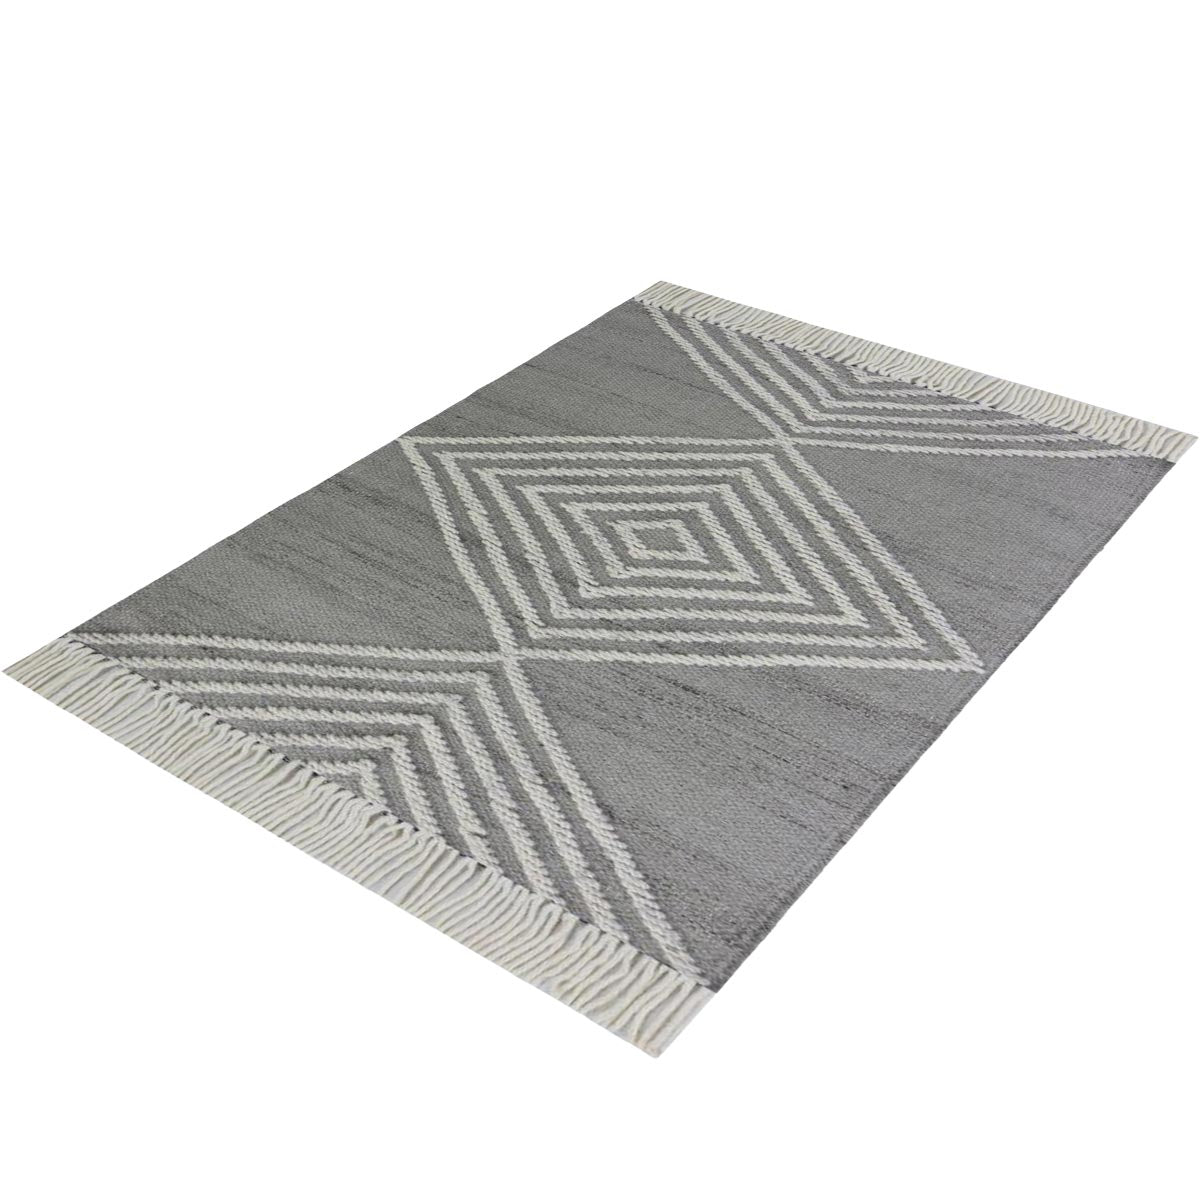 Tangier Rug 16 Grey/White 3